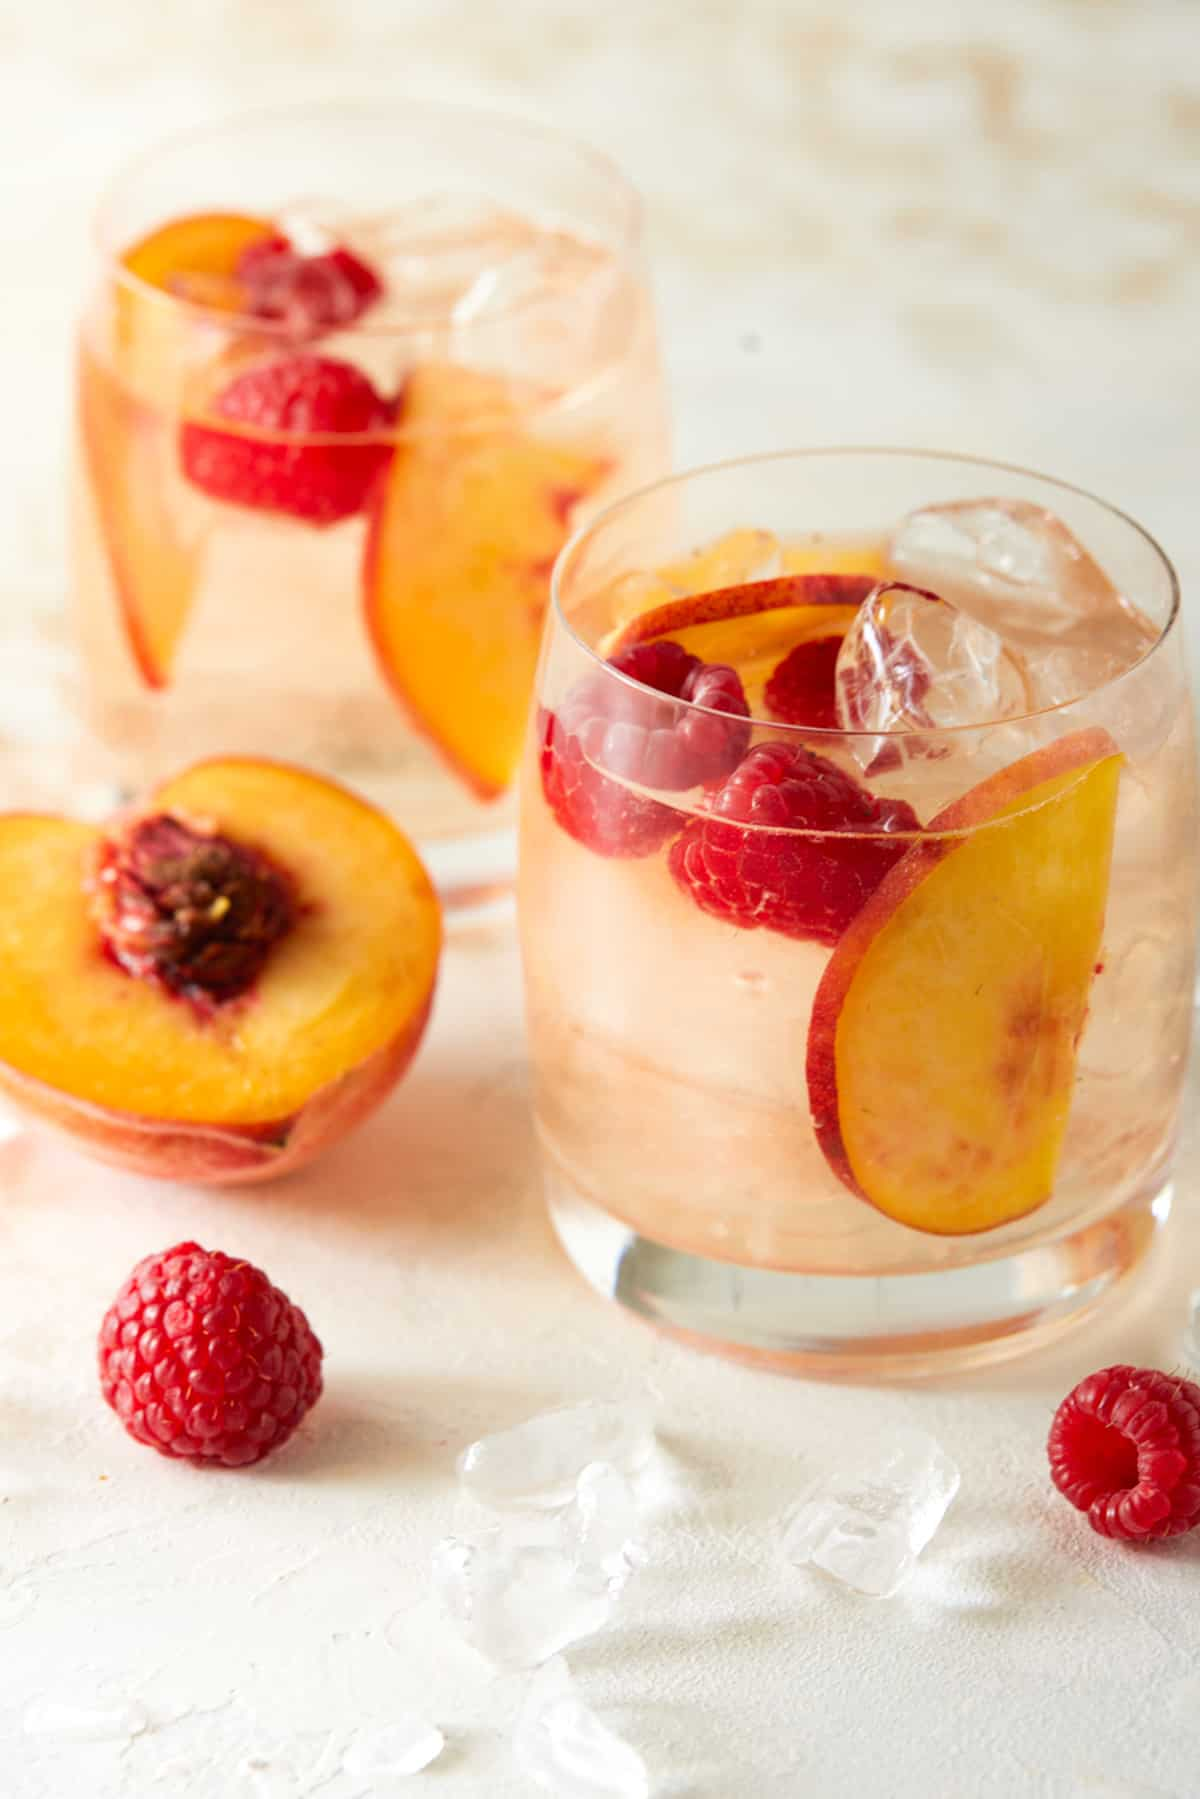 Two glasses of rosé sangria garnished with peach slices and raspberries.